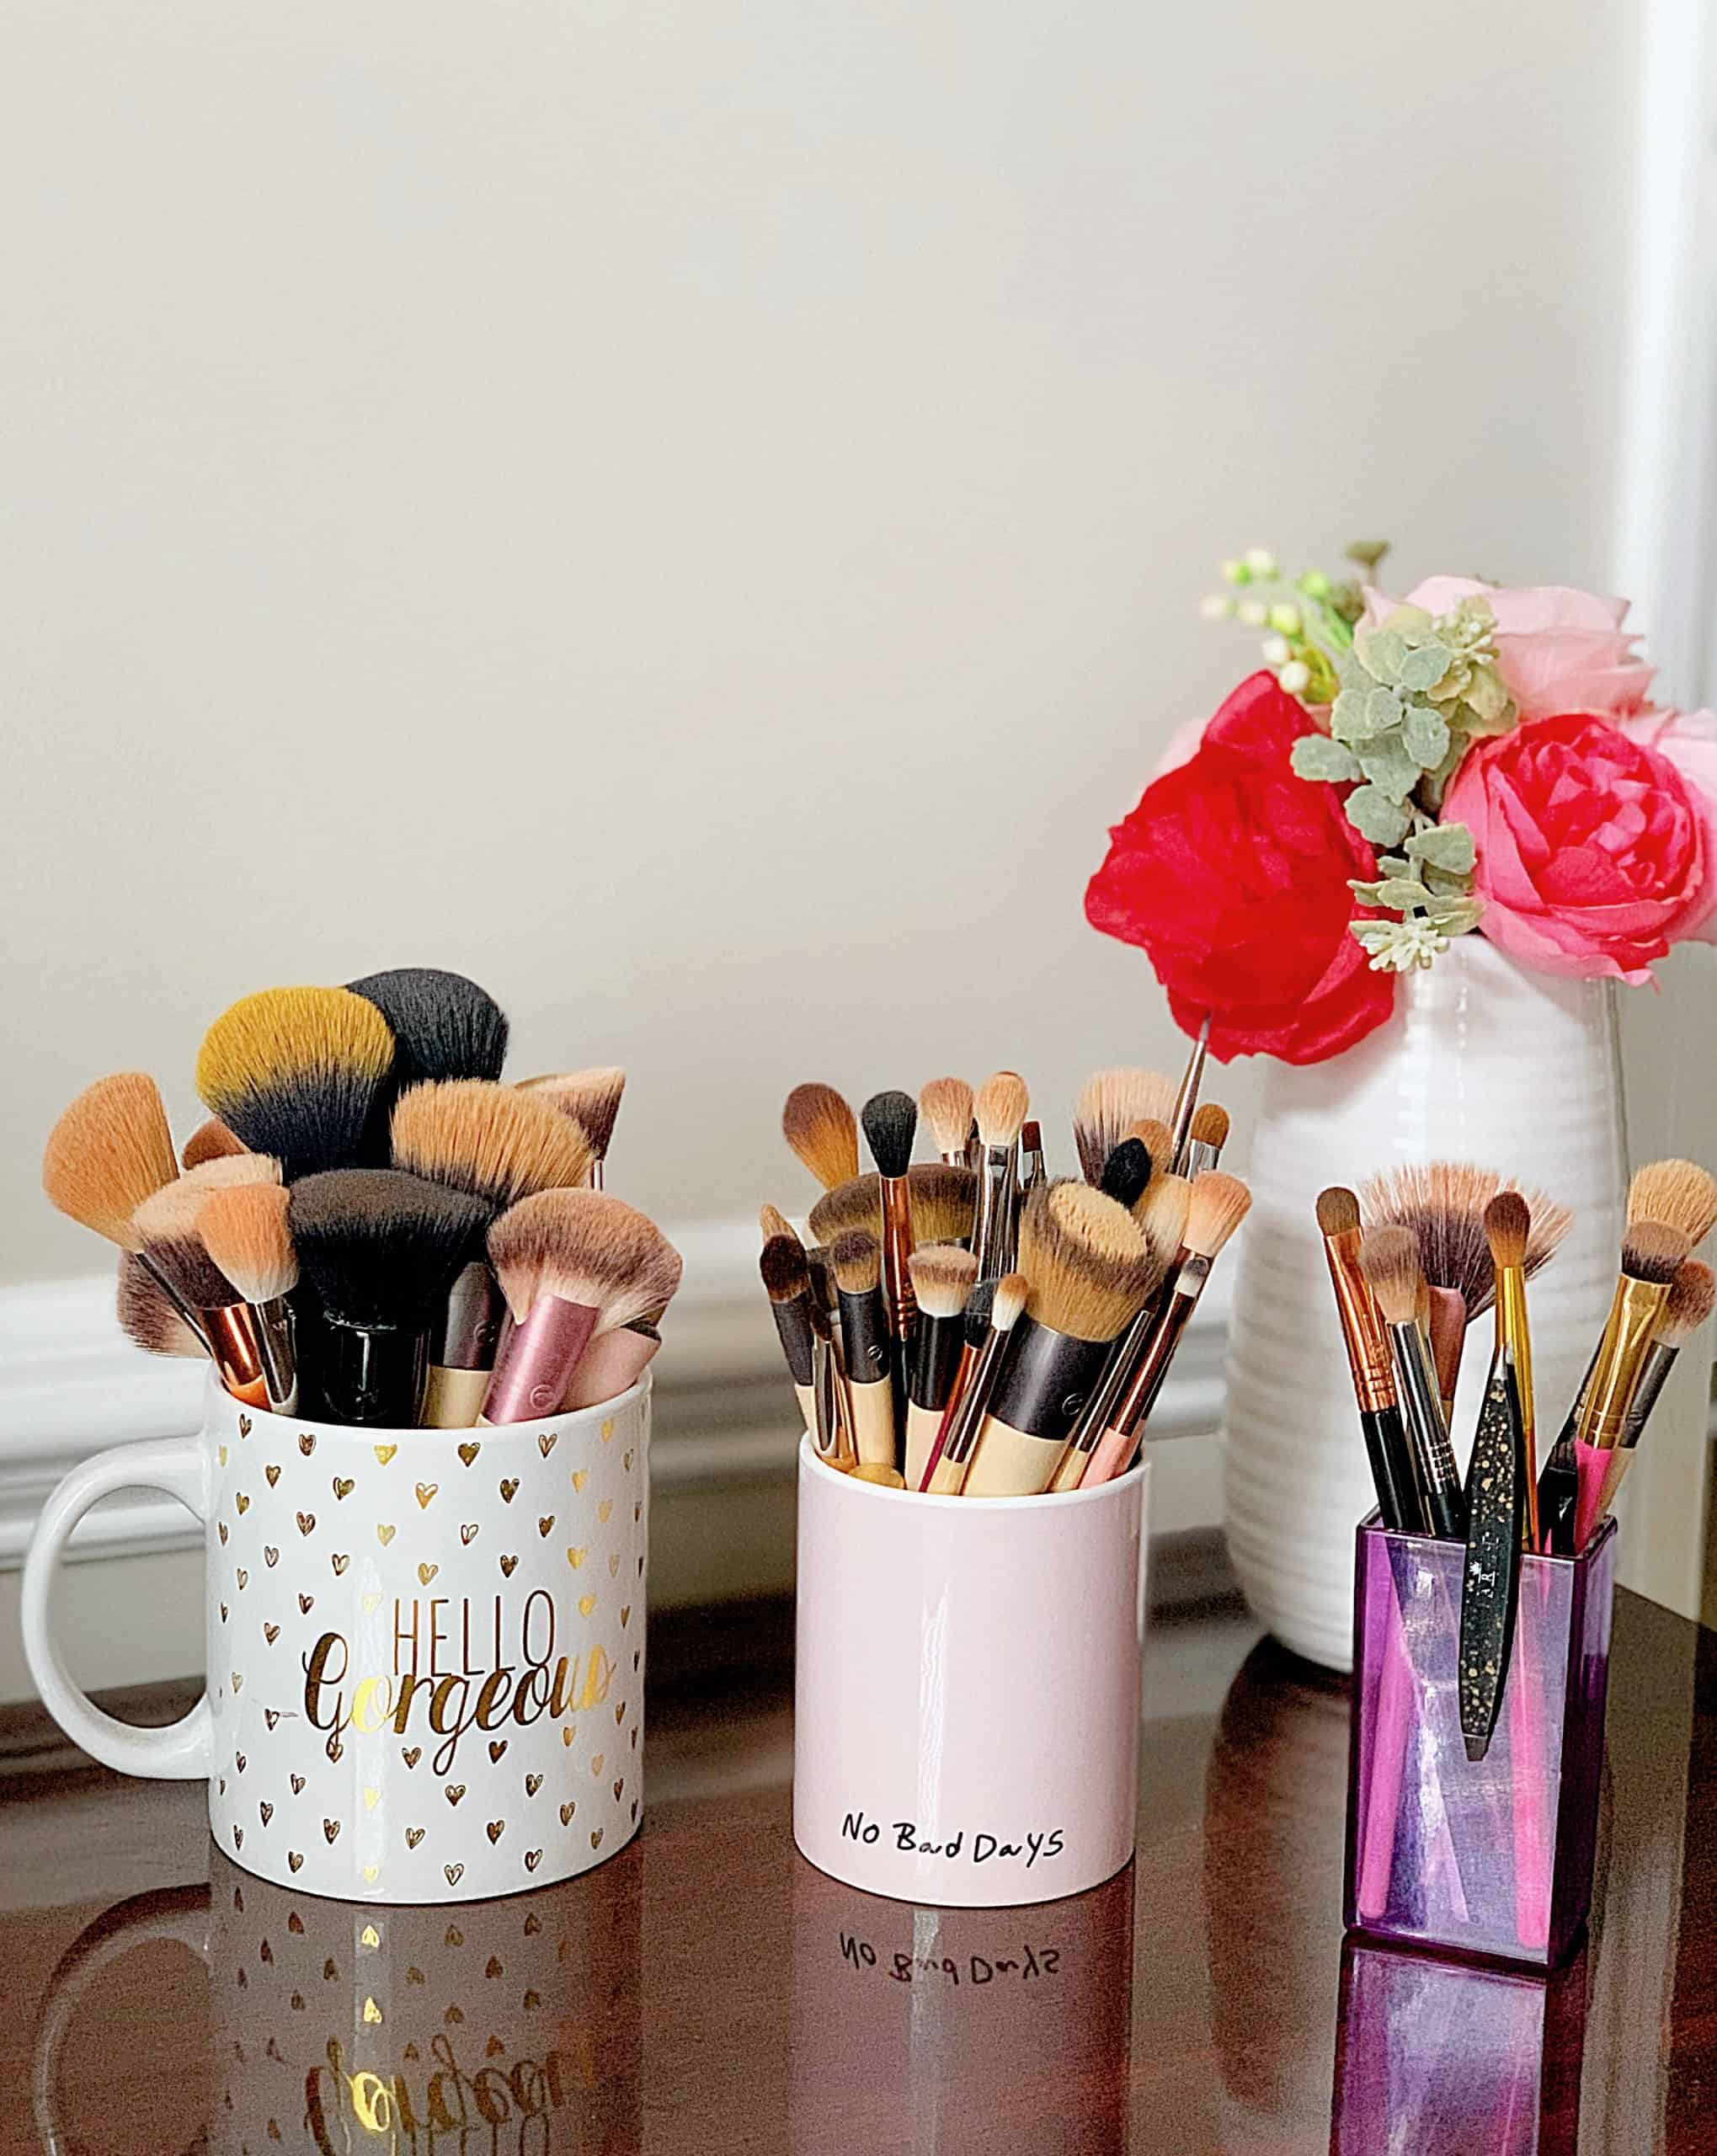 Looking for the best makeup brushes? Check out this list of the Best Affordable Makeup Brushes + Sets with both budget-friendly drugstore makeup brushes and affordable high end makeup brushes from Ulta, Sigma Beauty, and on Amazon! Everything is under $30! #makeupbrushes #bestmakeupbrushes #makeupbrushsets #affordablebeauty